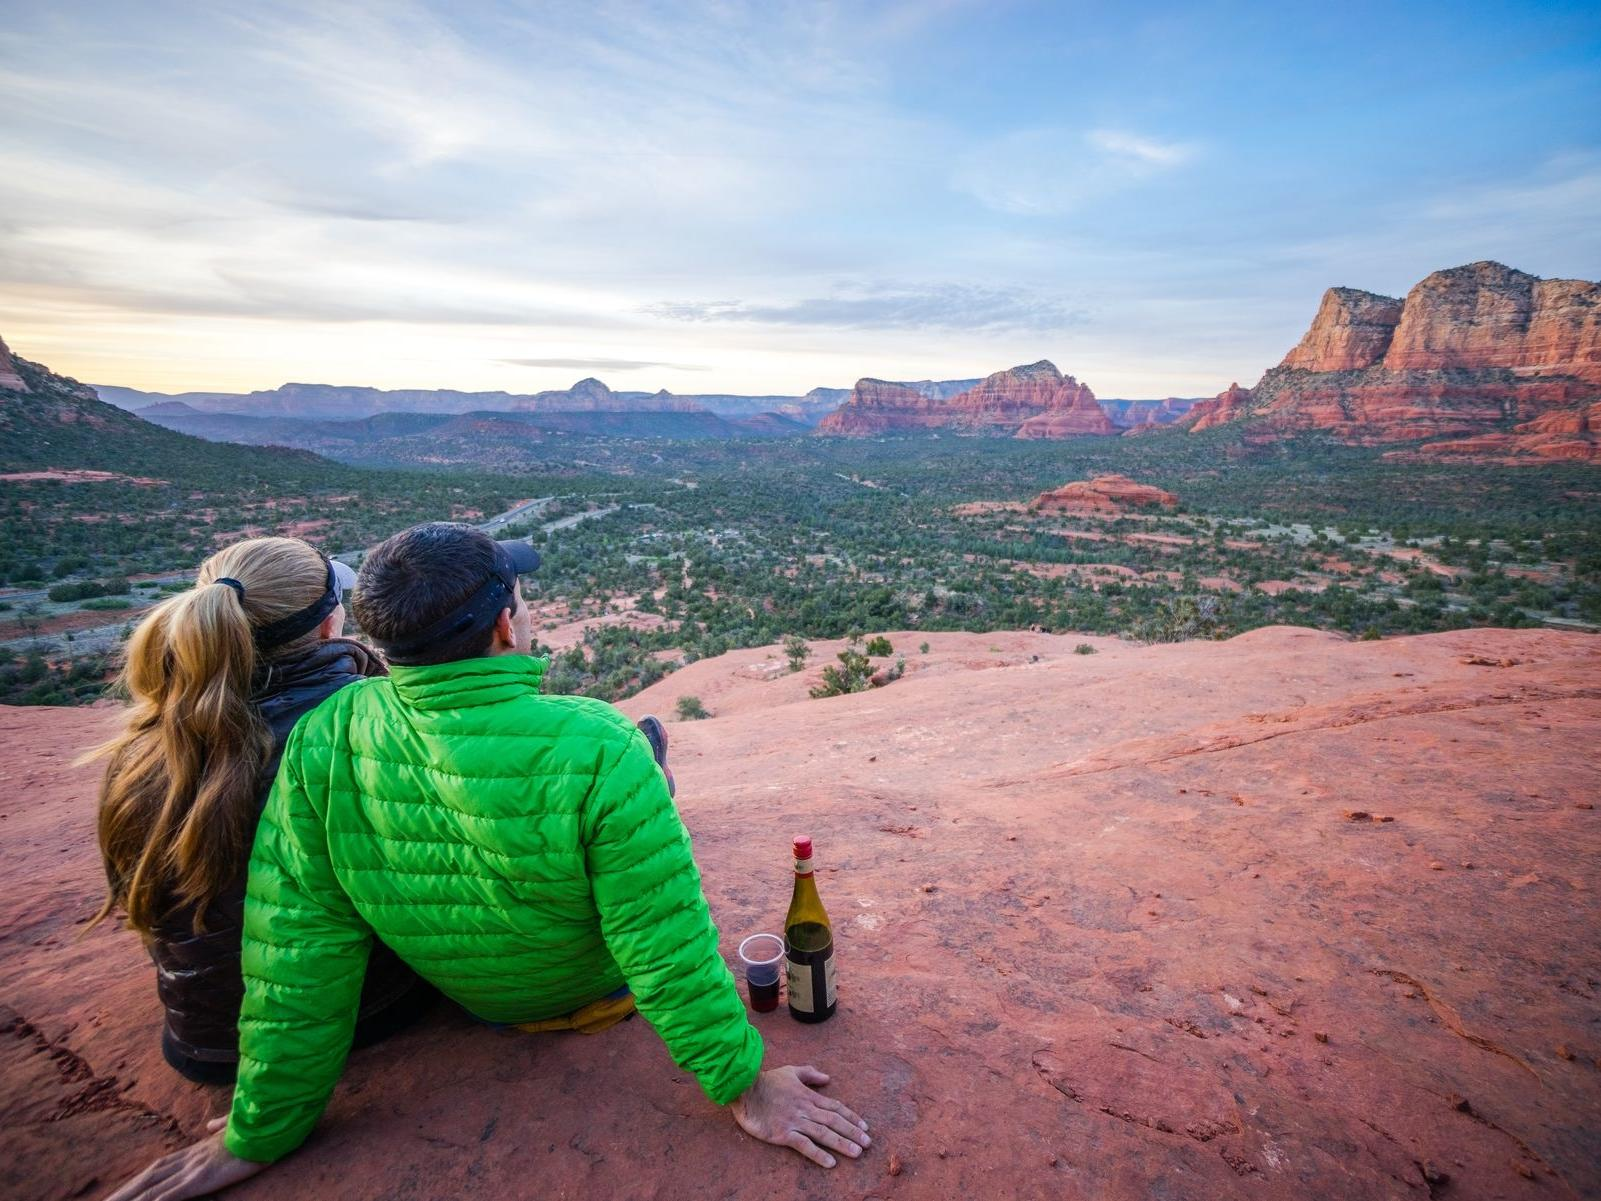 A couple enjoying the view of a beautiful landscape